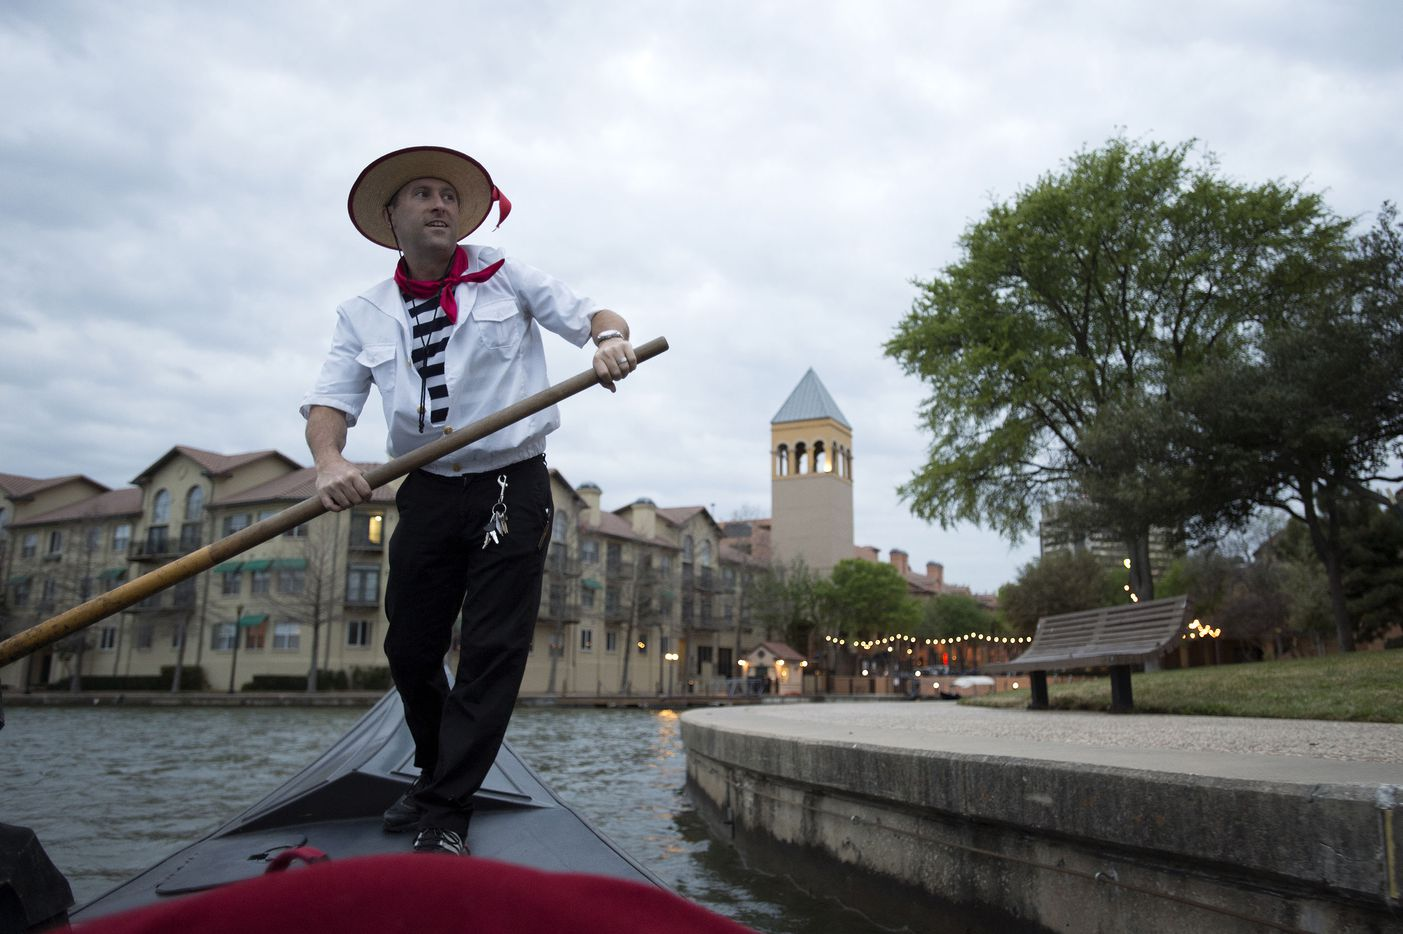 Greg Mohr, chief gondolier for Gondola Adventures, rows his gondola on Las Colinas' Lake Carolyn in March, 2013.